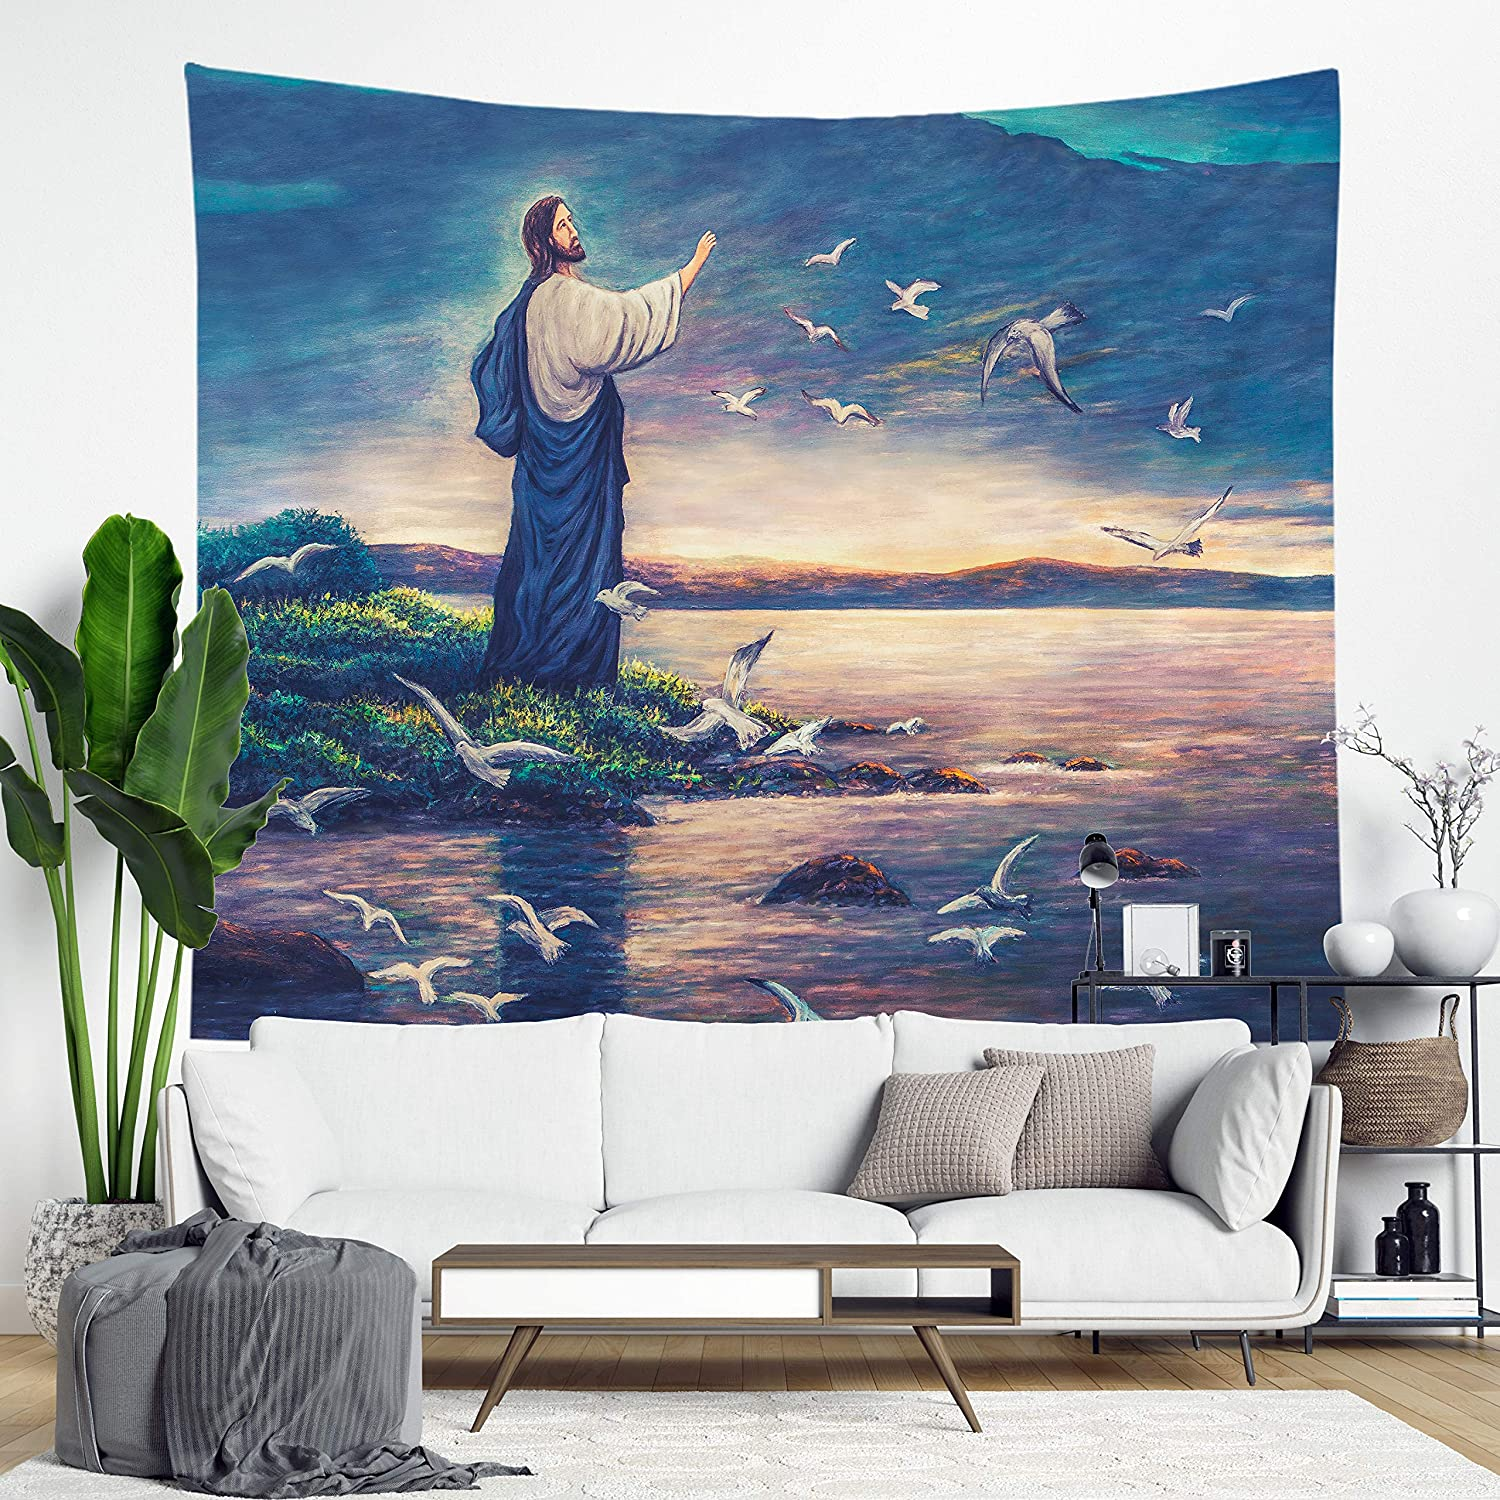 DuftGu Jesus Tapestry ChristianReligious Wall HangingTapestryJesus with Seagulls Wall Art for Home Bedroom Living Room Dorm Decor 51x60 Inches